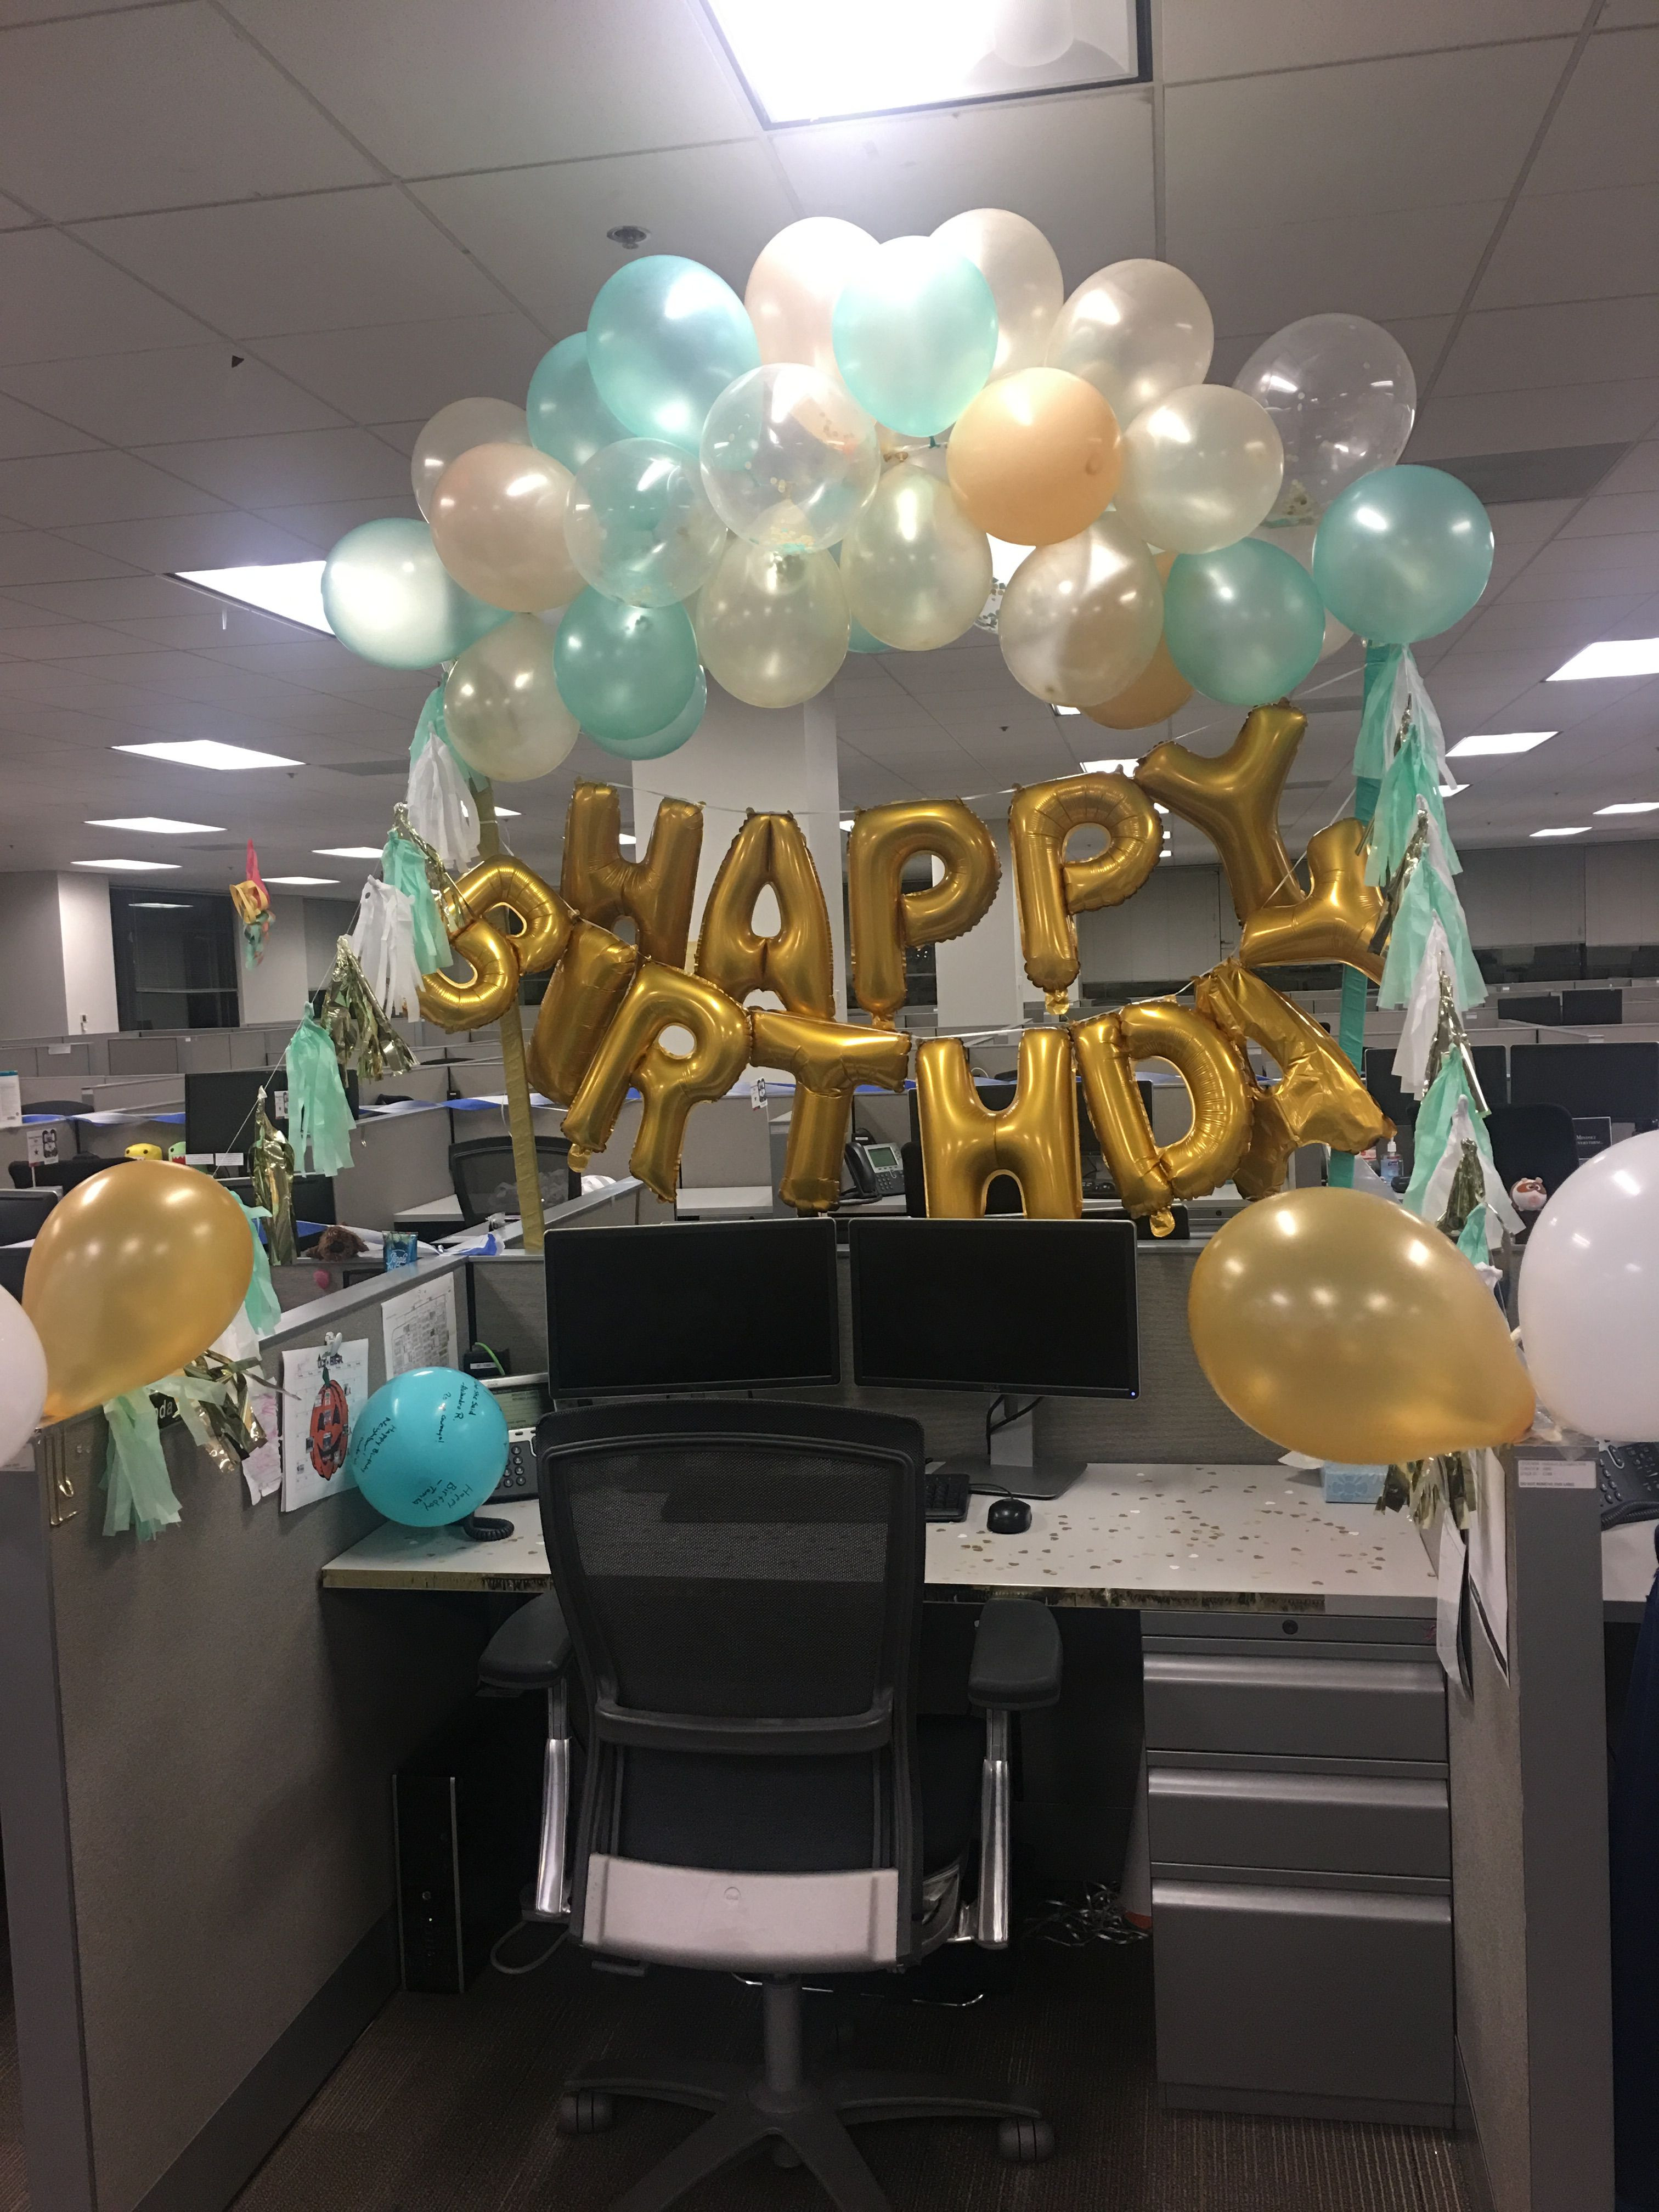 Best ideas about Birthday Desk Decorations . Save or Pin Mint green and gold desk birthday decorations Now.